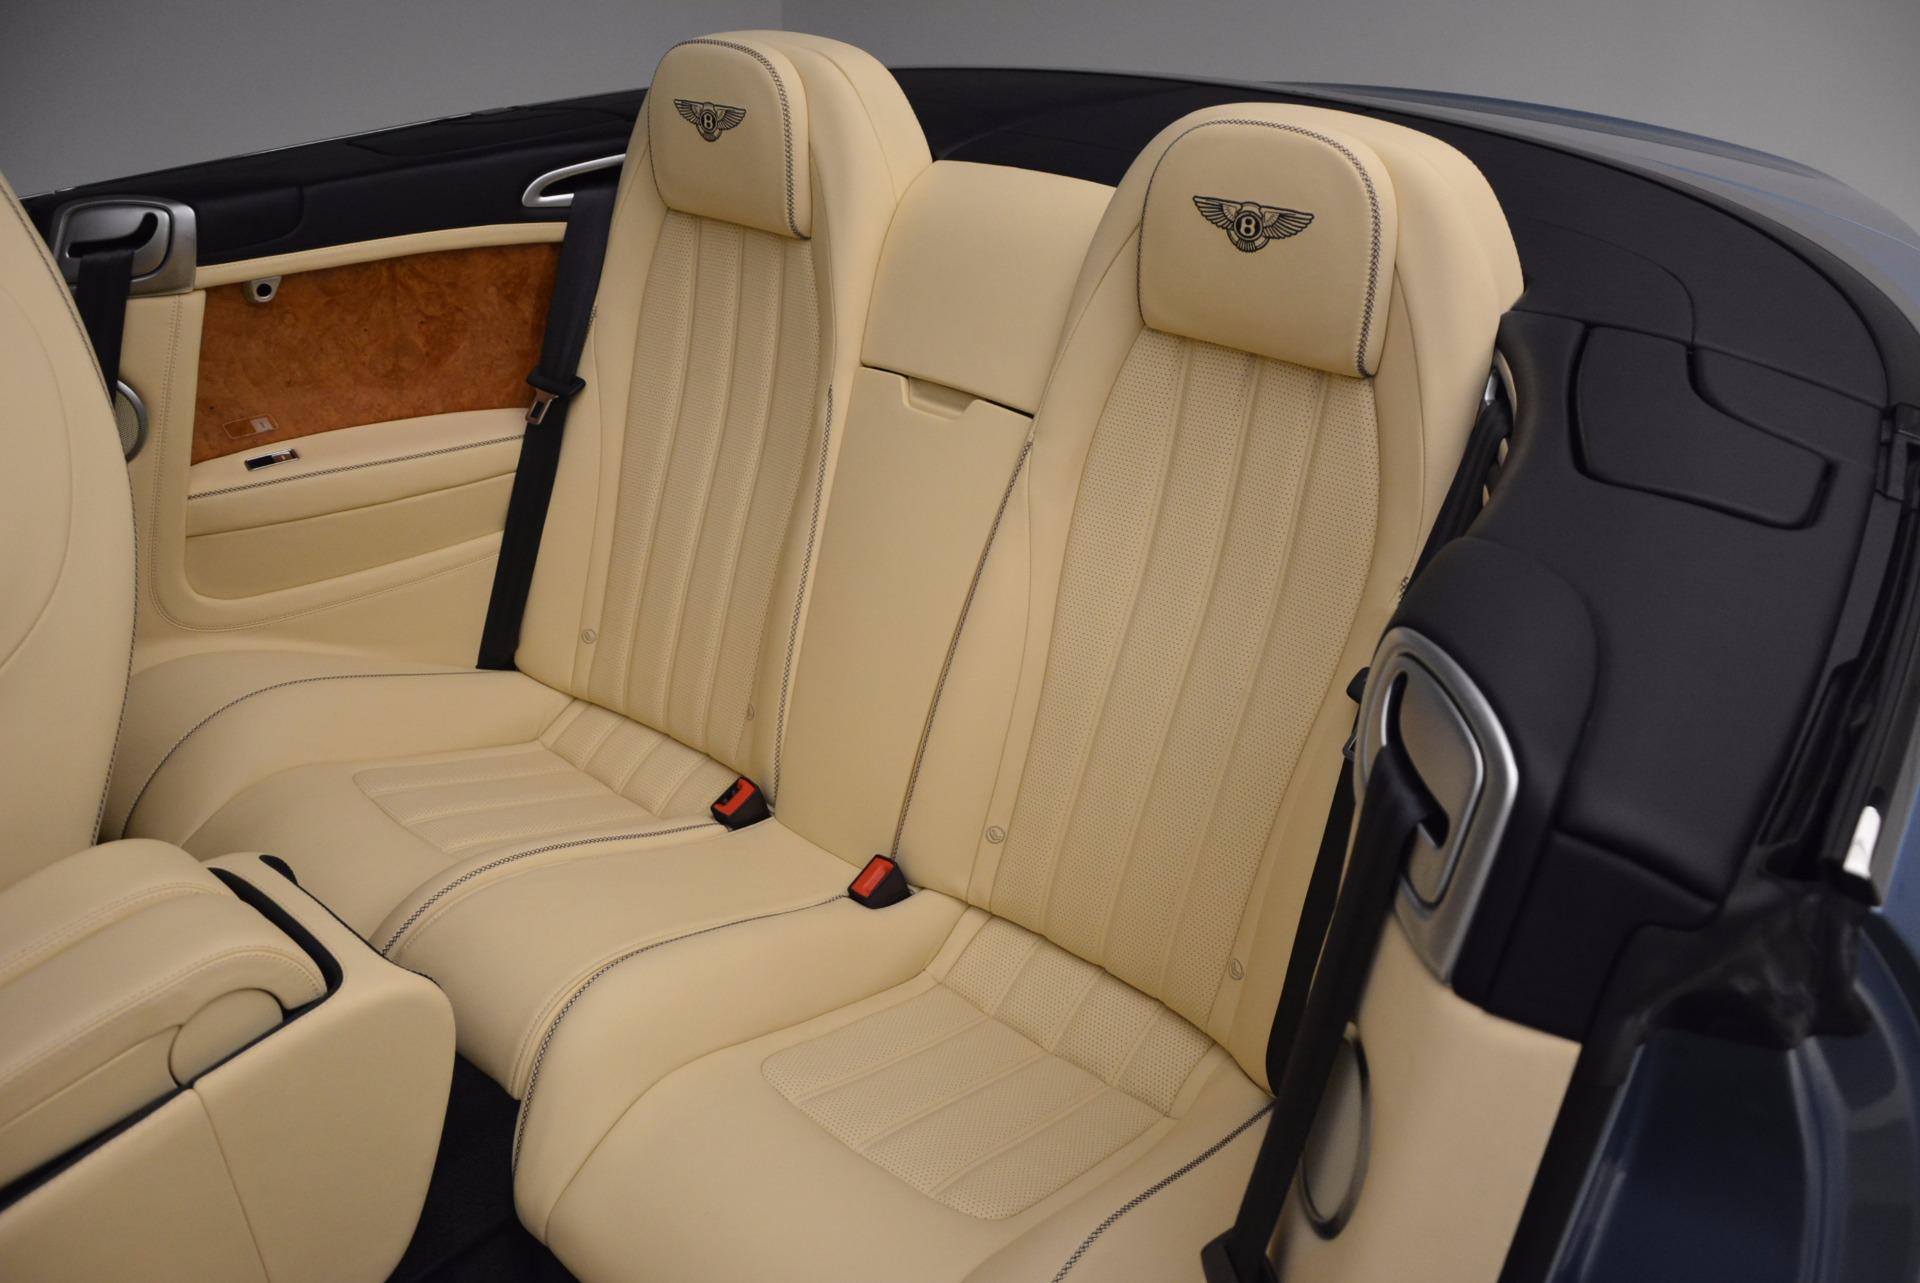 Used 2012 Bentley Continental GTC W12 For Sale In Westport, CT 1475_p37